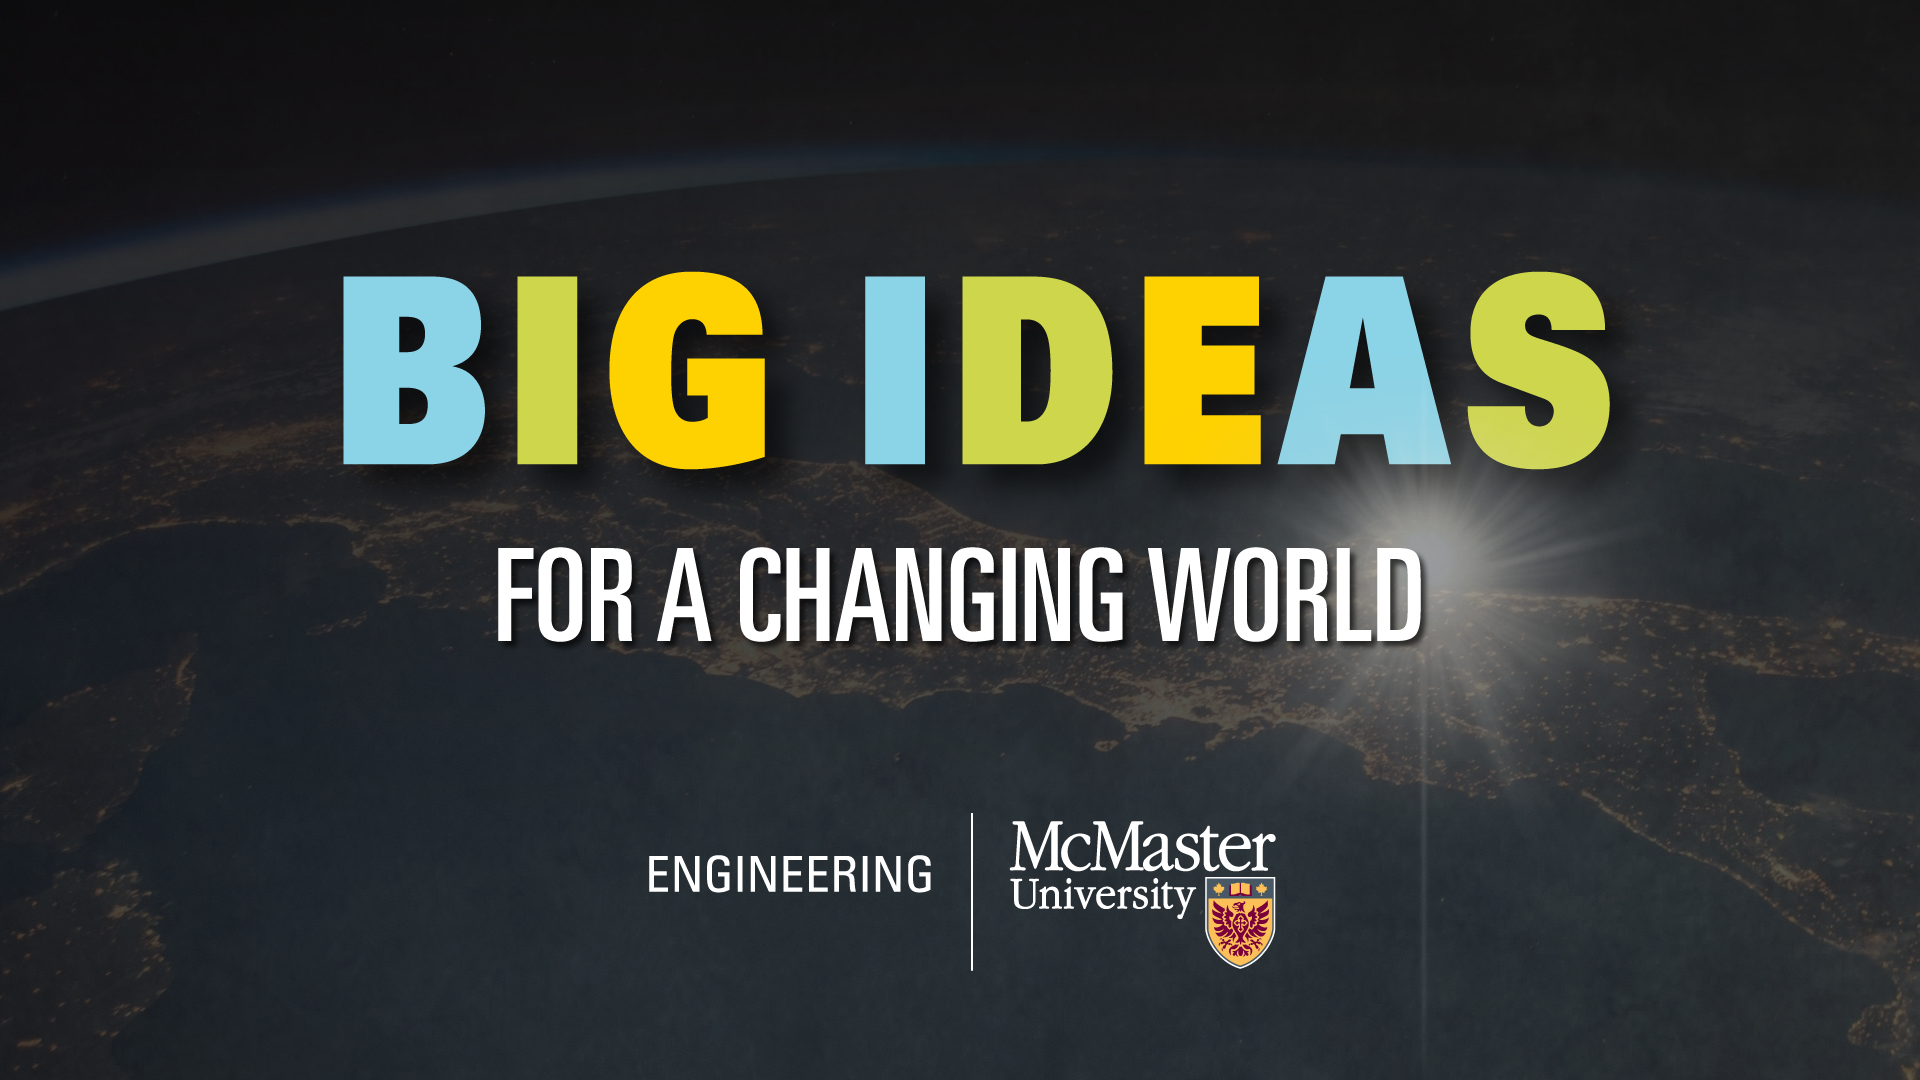 McMaster Engineering launches podcast on innovation during COVID-19